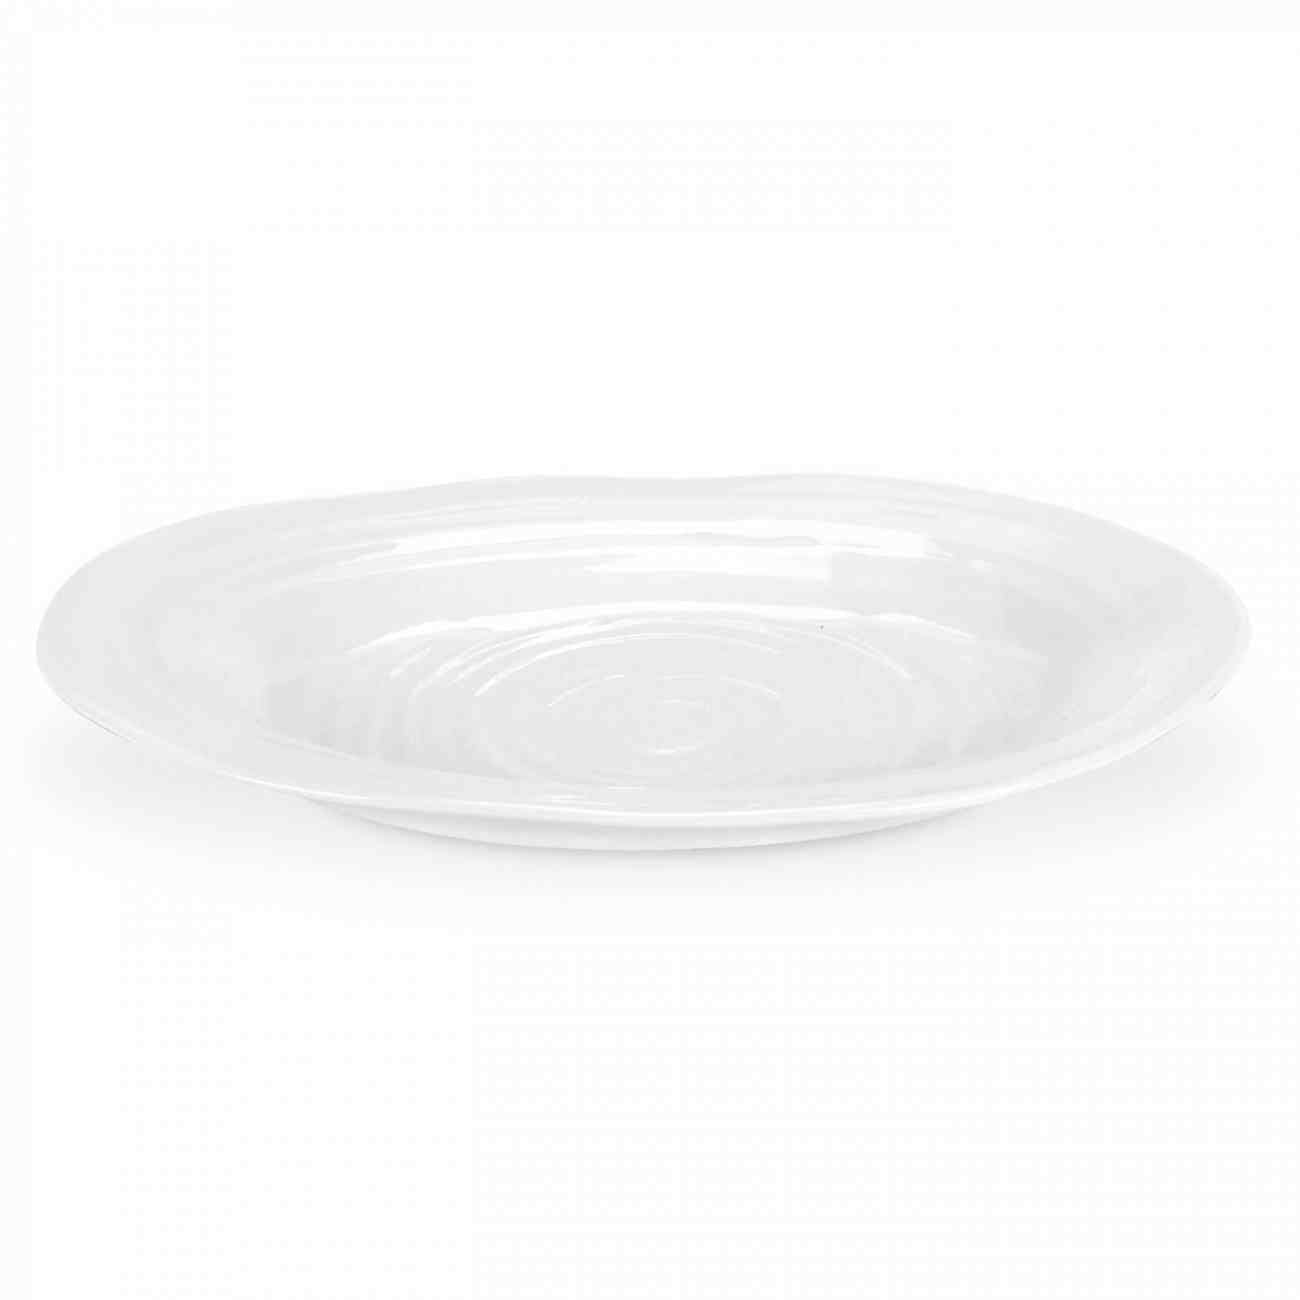 """SOPHIE CONRAN PLATE SMALL OVAL 29.5x21.5cm/11.75""""x8.5"""" CPW76839-X"""